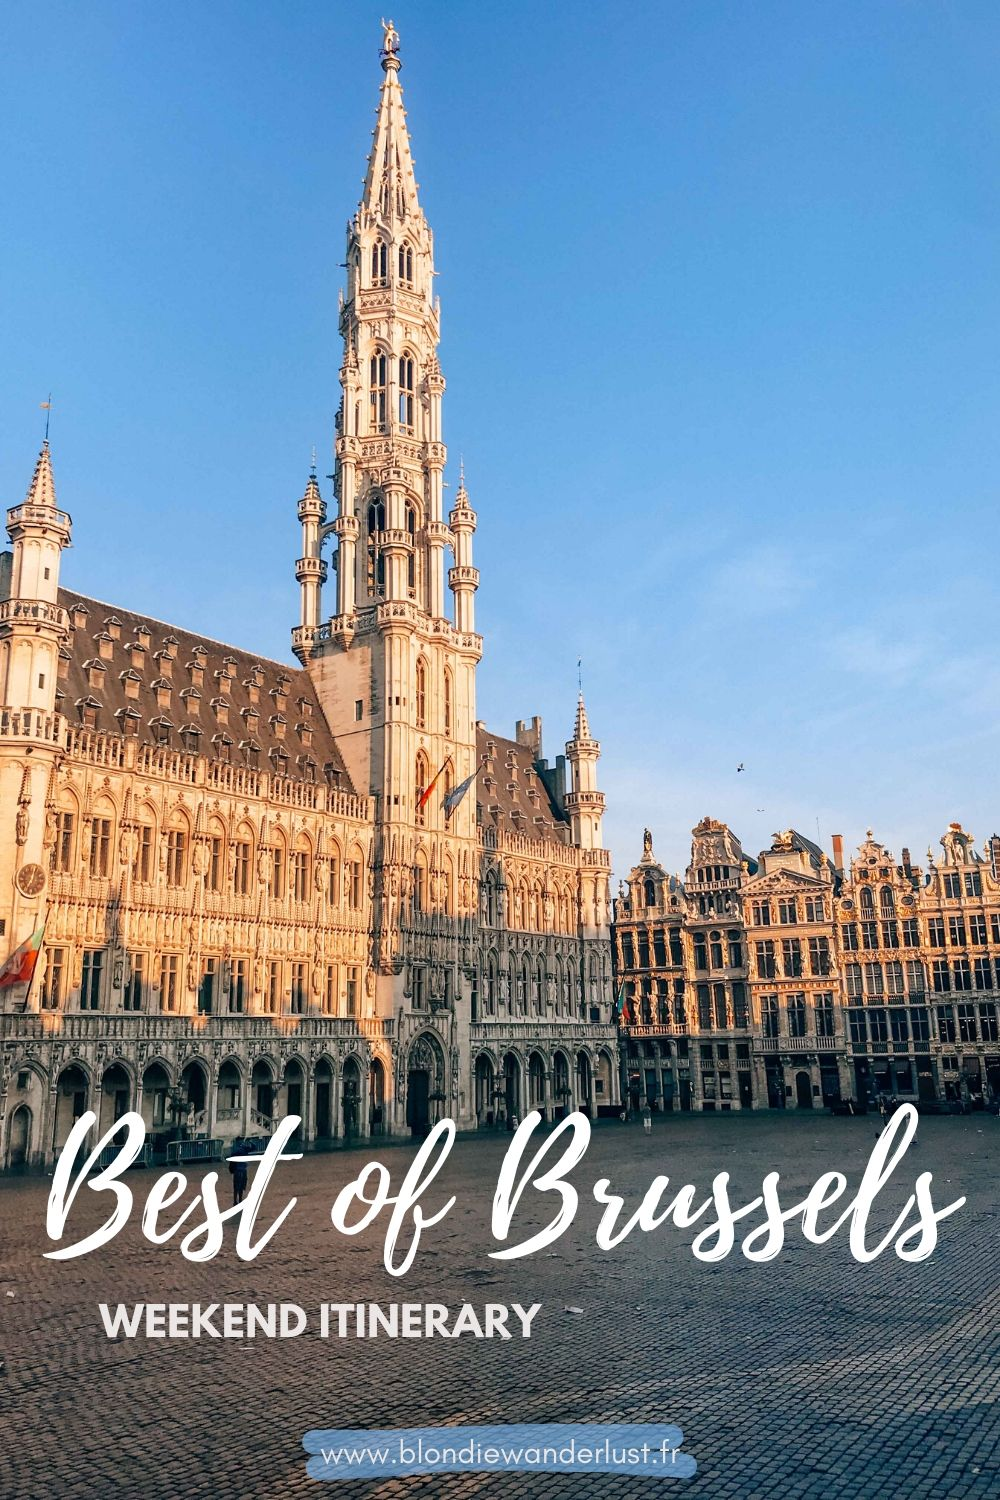 Best of Brussels, weekend itinerary